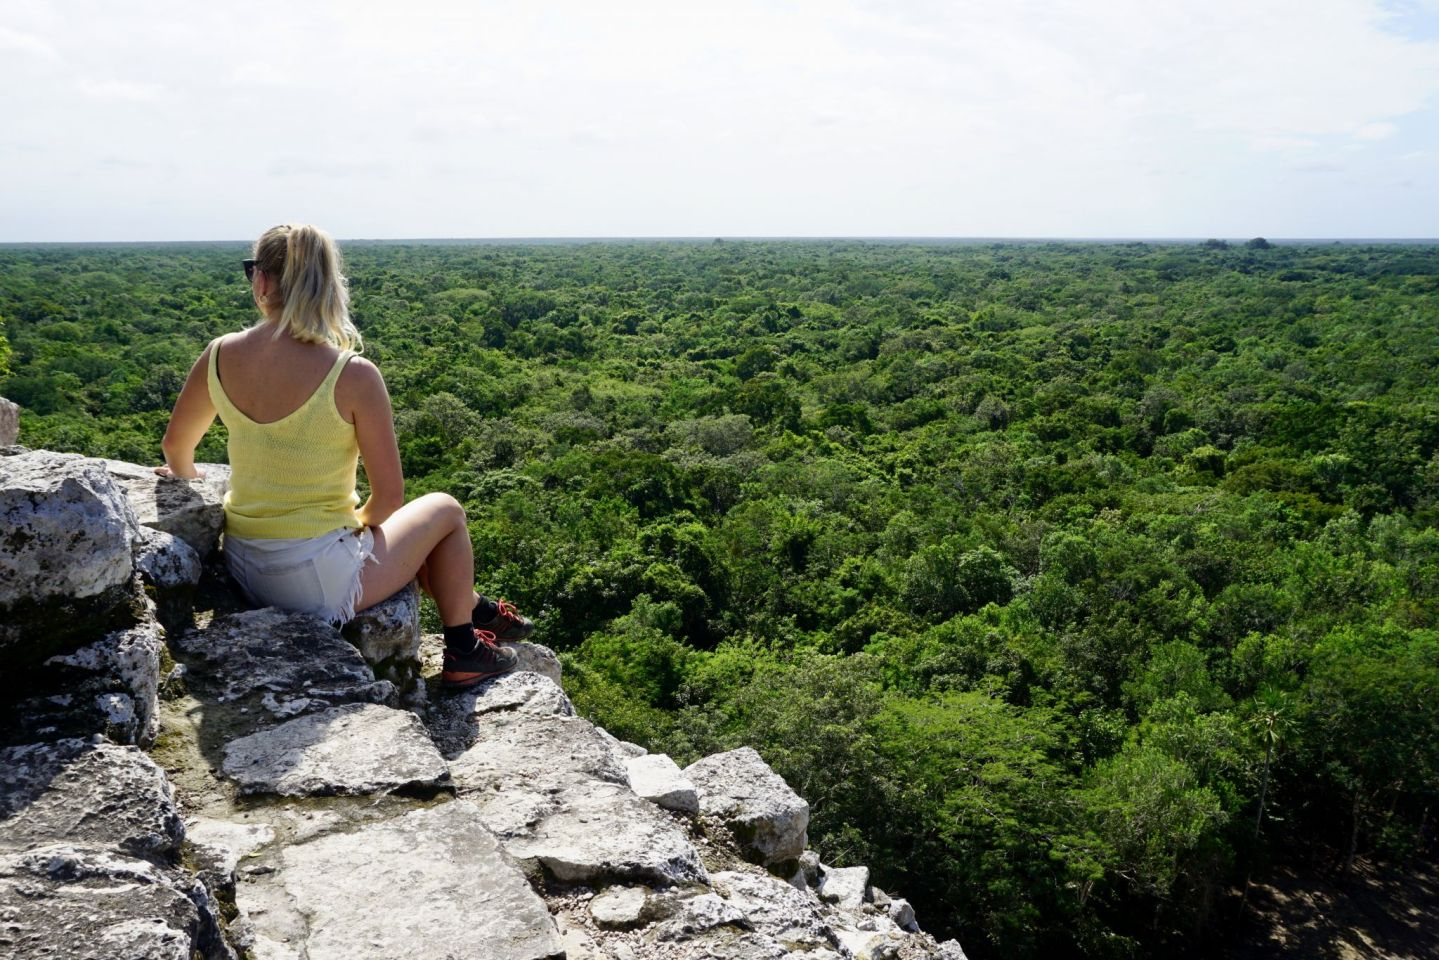 Seven Useful Travel Tips for Visiting the Ancient Mayan City of Cobá